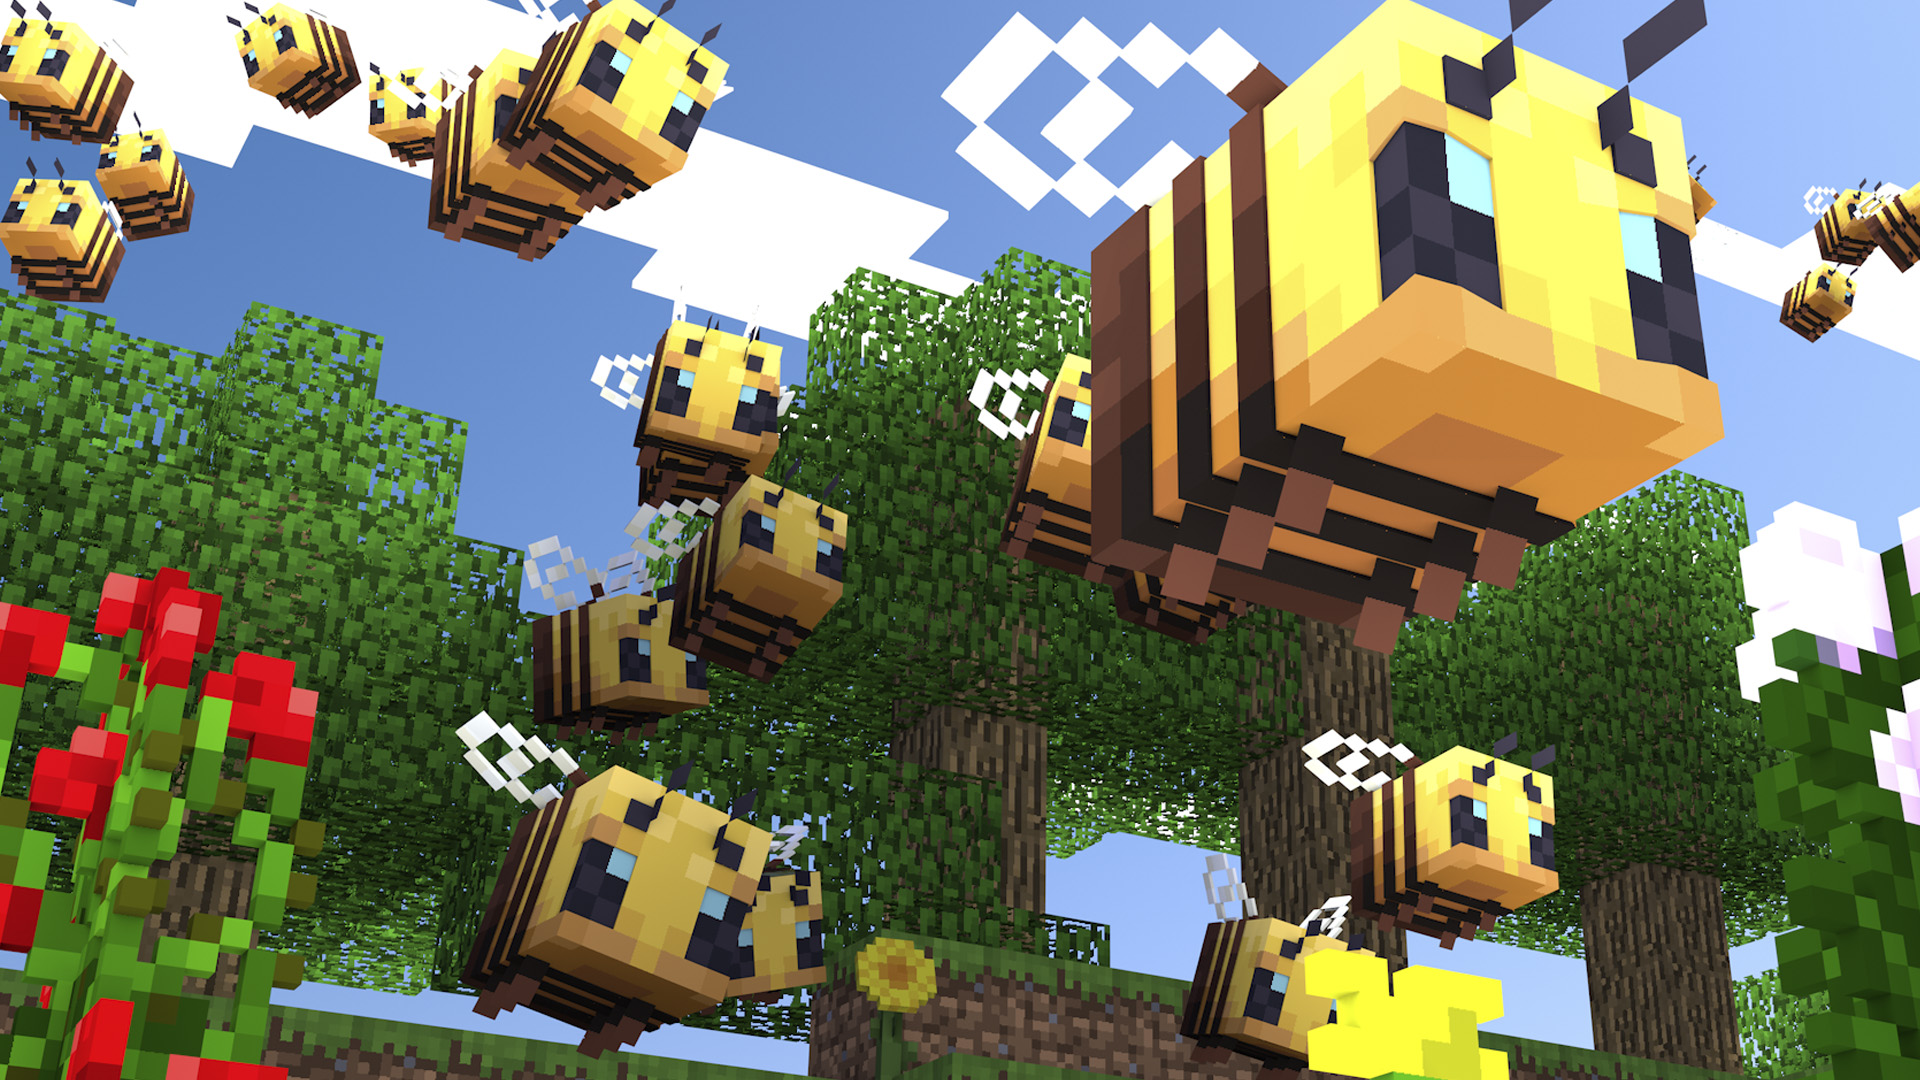 Minecraft update out today (version 110.11010.10) - PS10 cross-play, bees